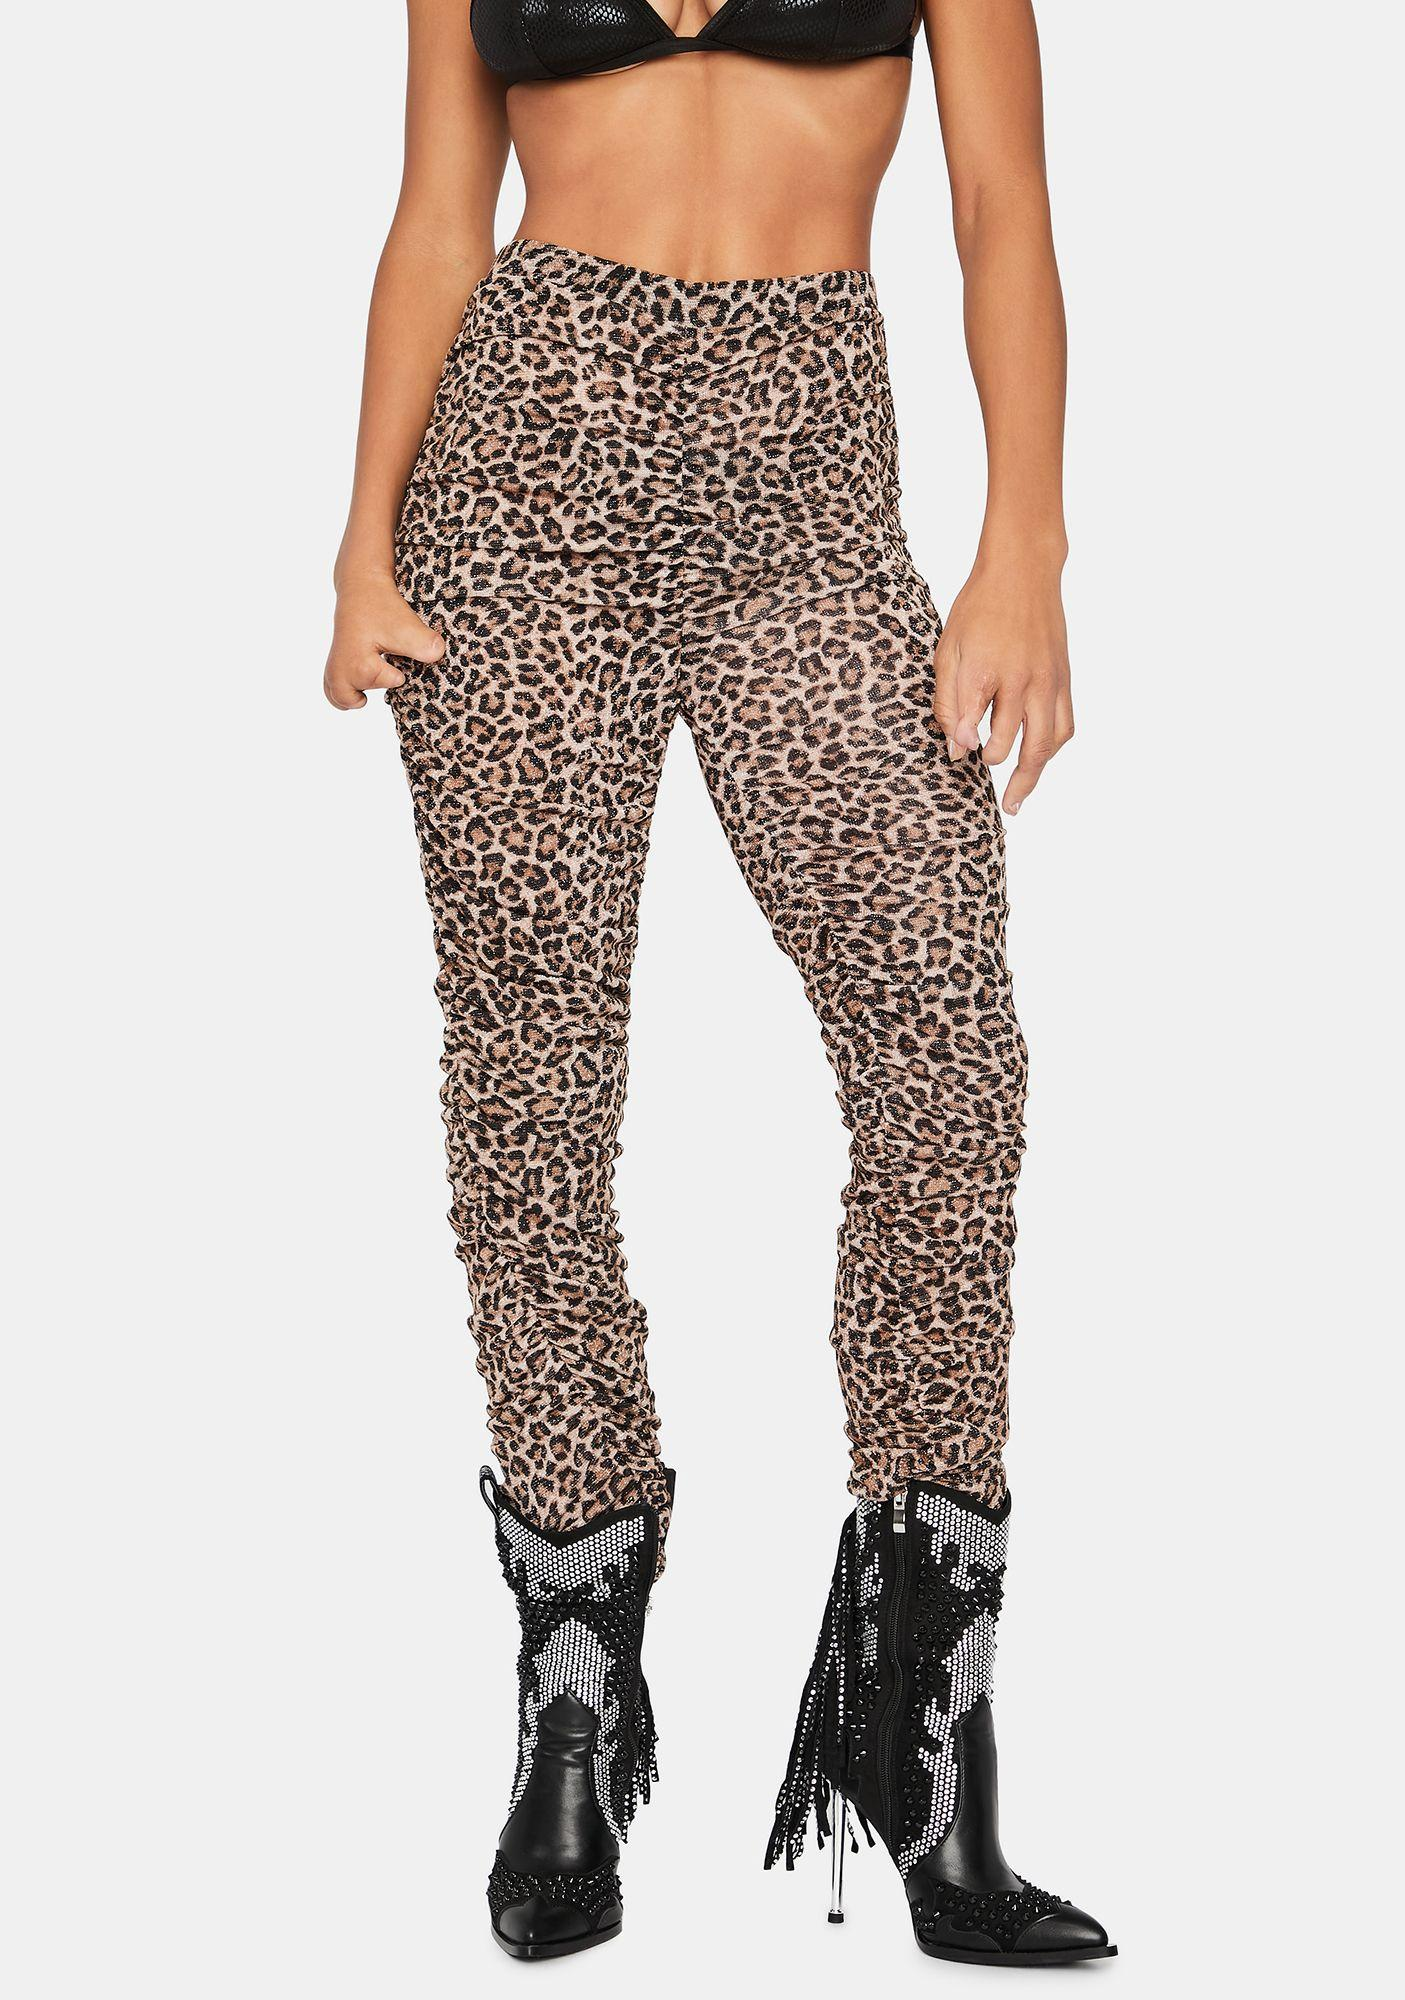 Hotel Motel Leopard Print Ruched Pants